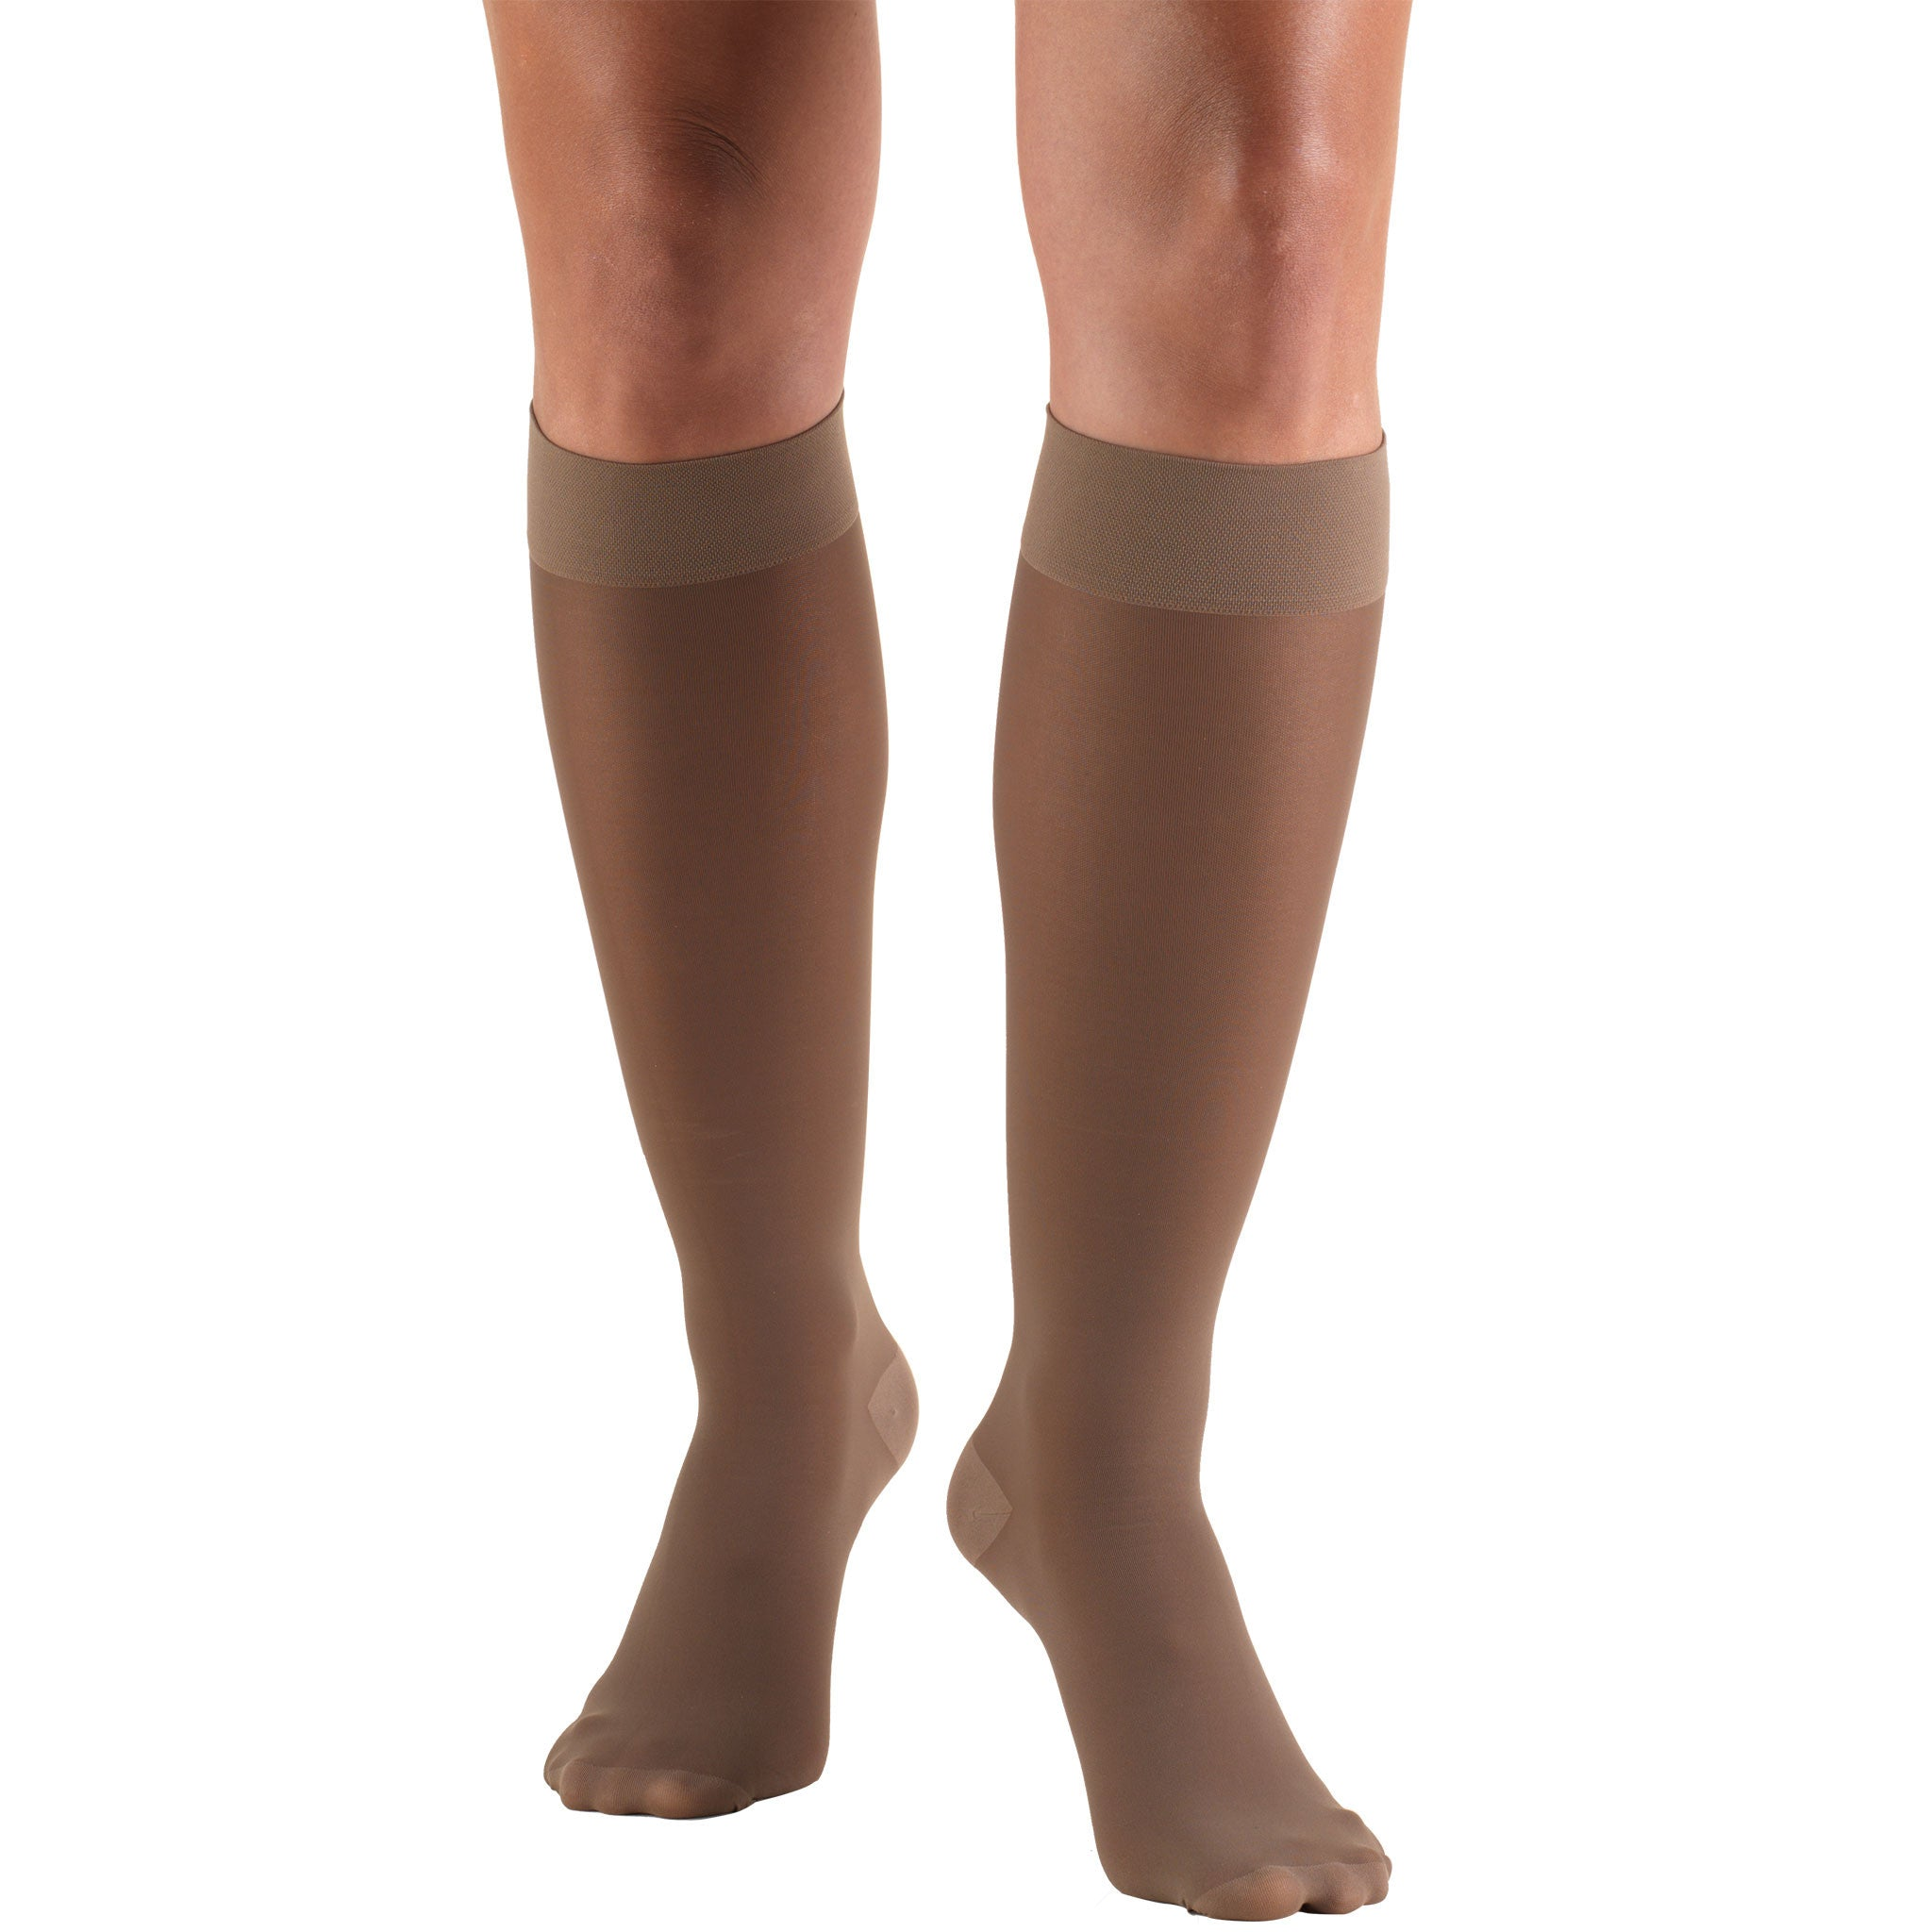 SHEER BELOW KNEE CLOSED TOE TAUPE STOCKINGS